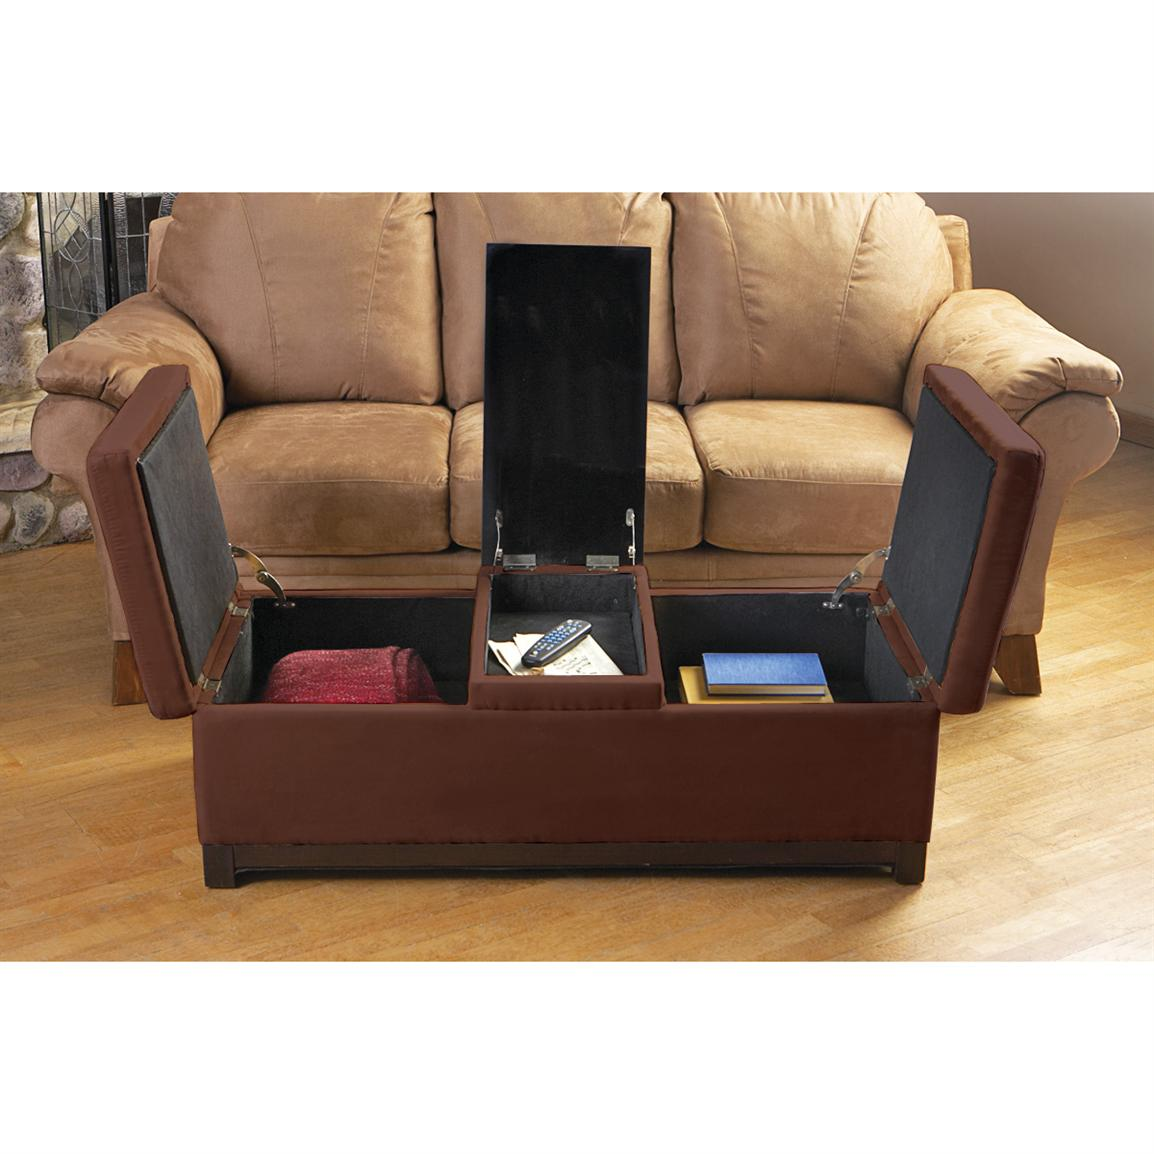 living room ottoman with storage storage coffee table ottoman 117915 living room at 21156